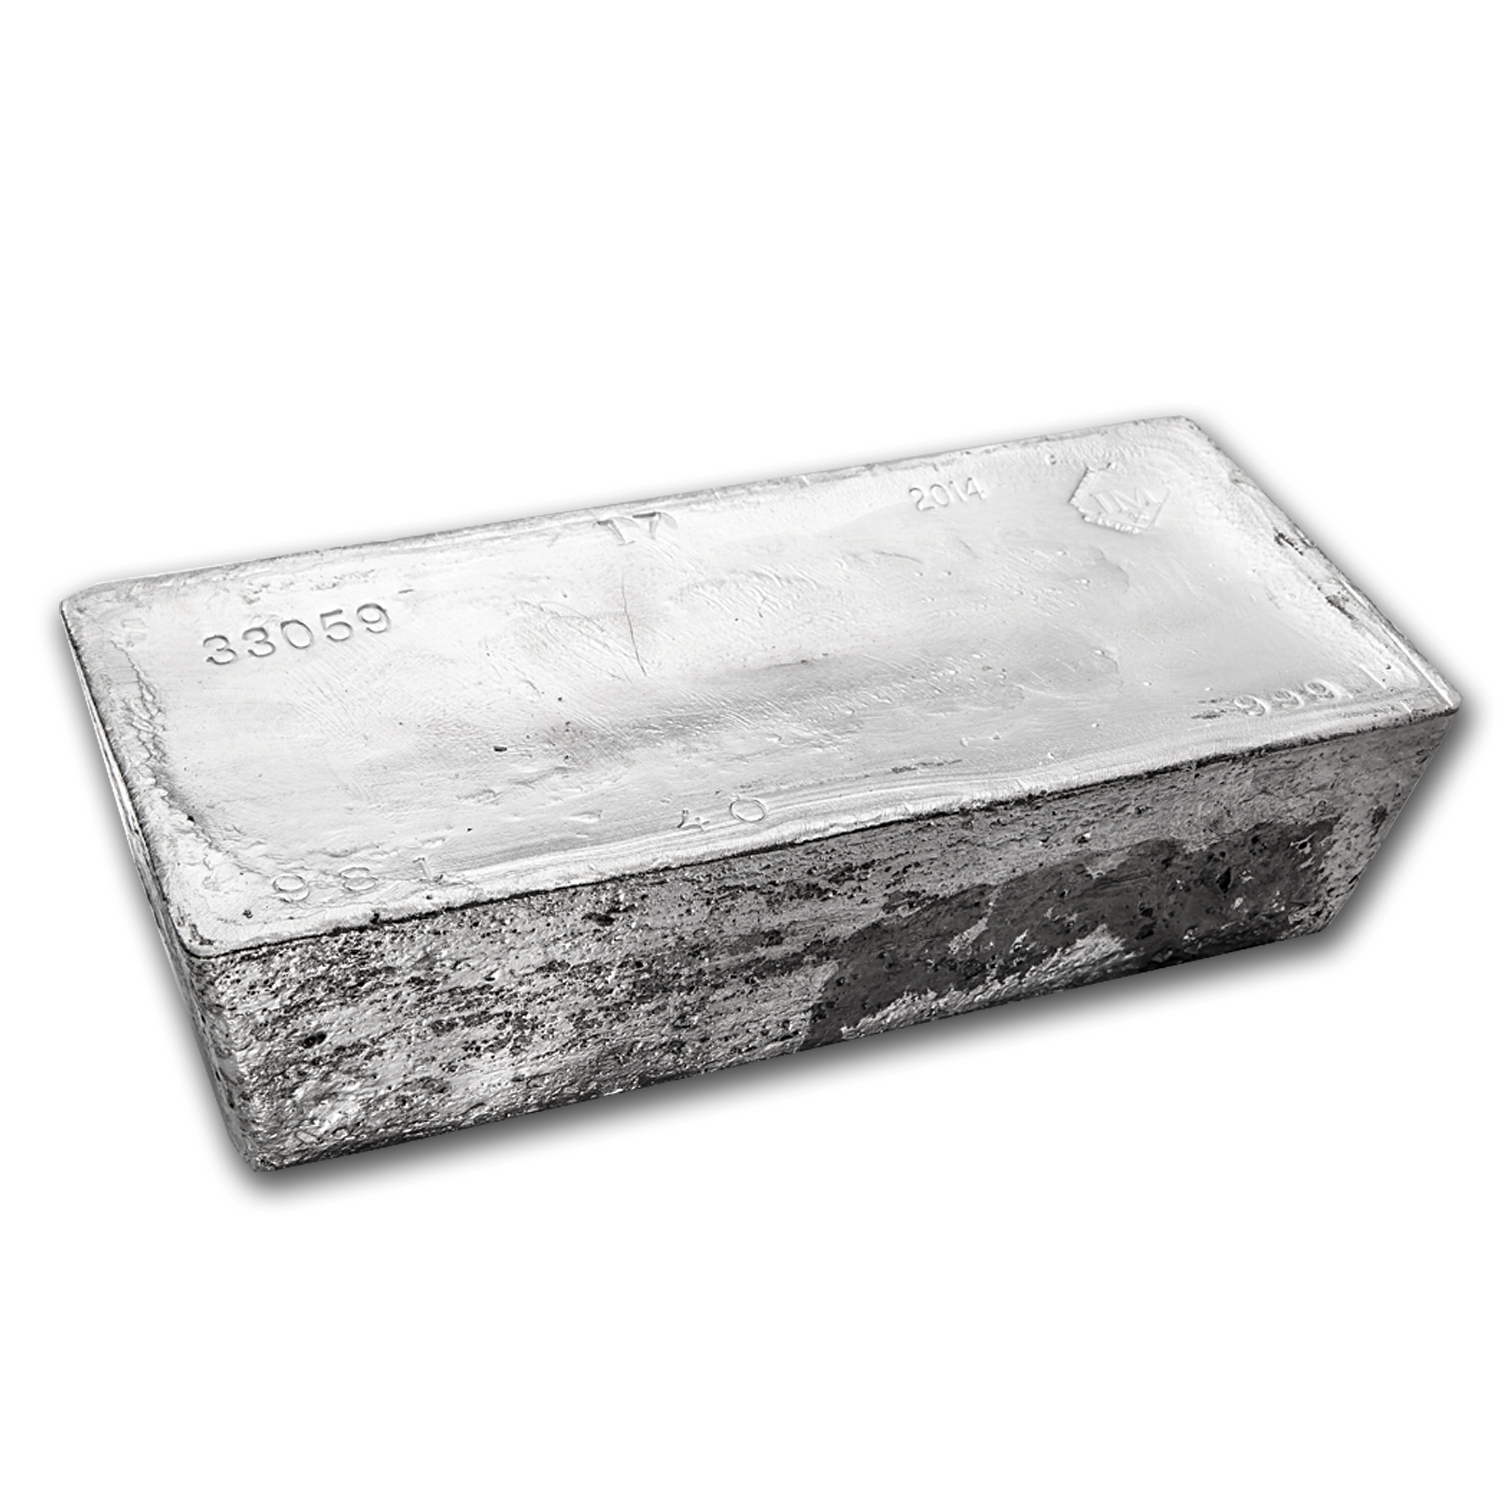 899.80 oz Silver Bar - Johnson Matthey